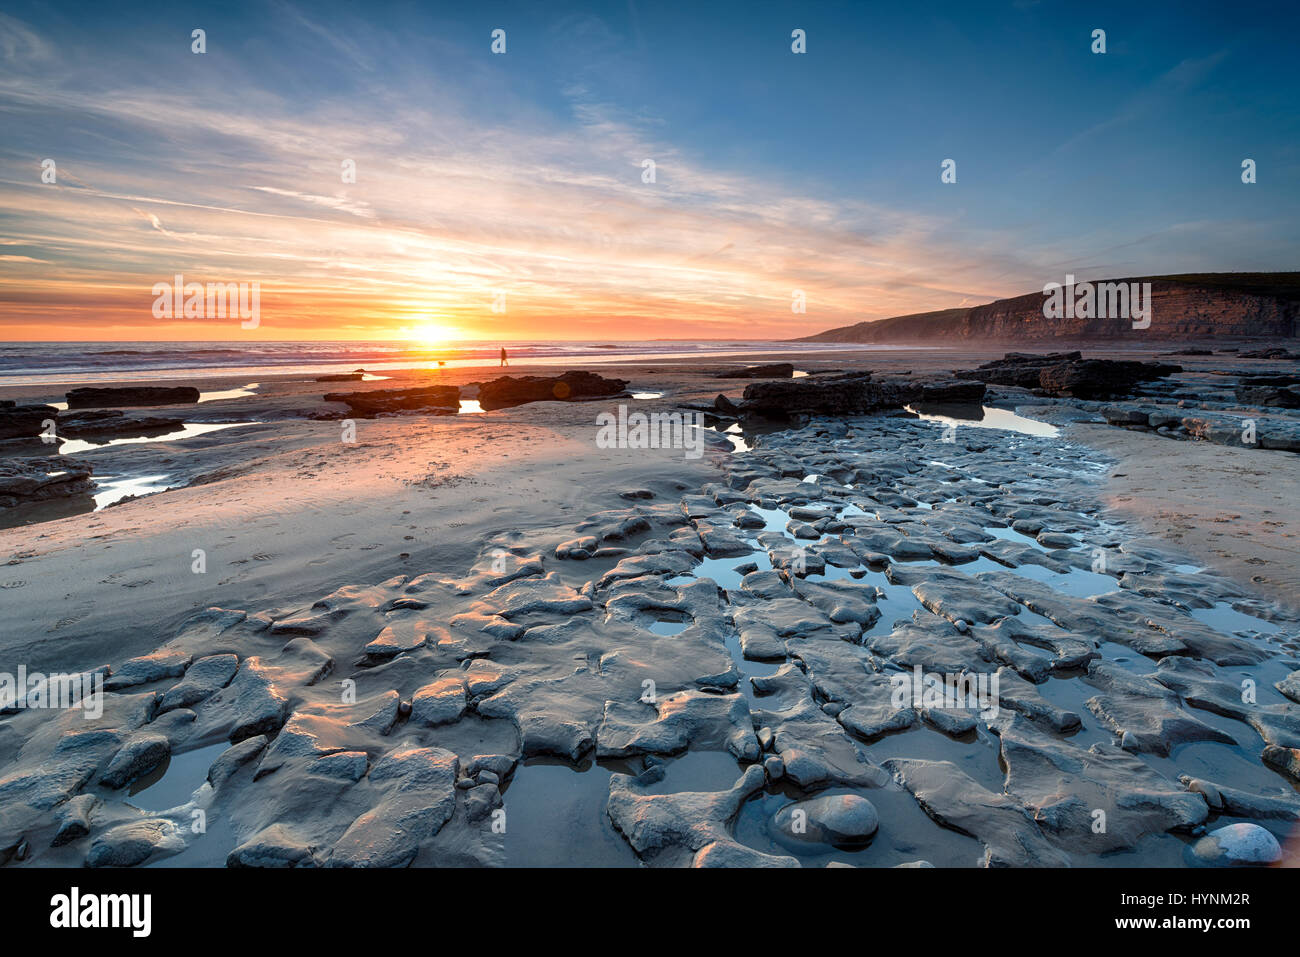 Sunset at Dunraven Bay a large beach at Southerndown on the south coast of Wales - Stock Image